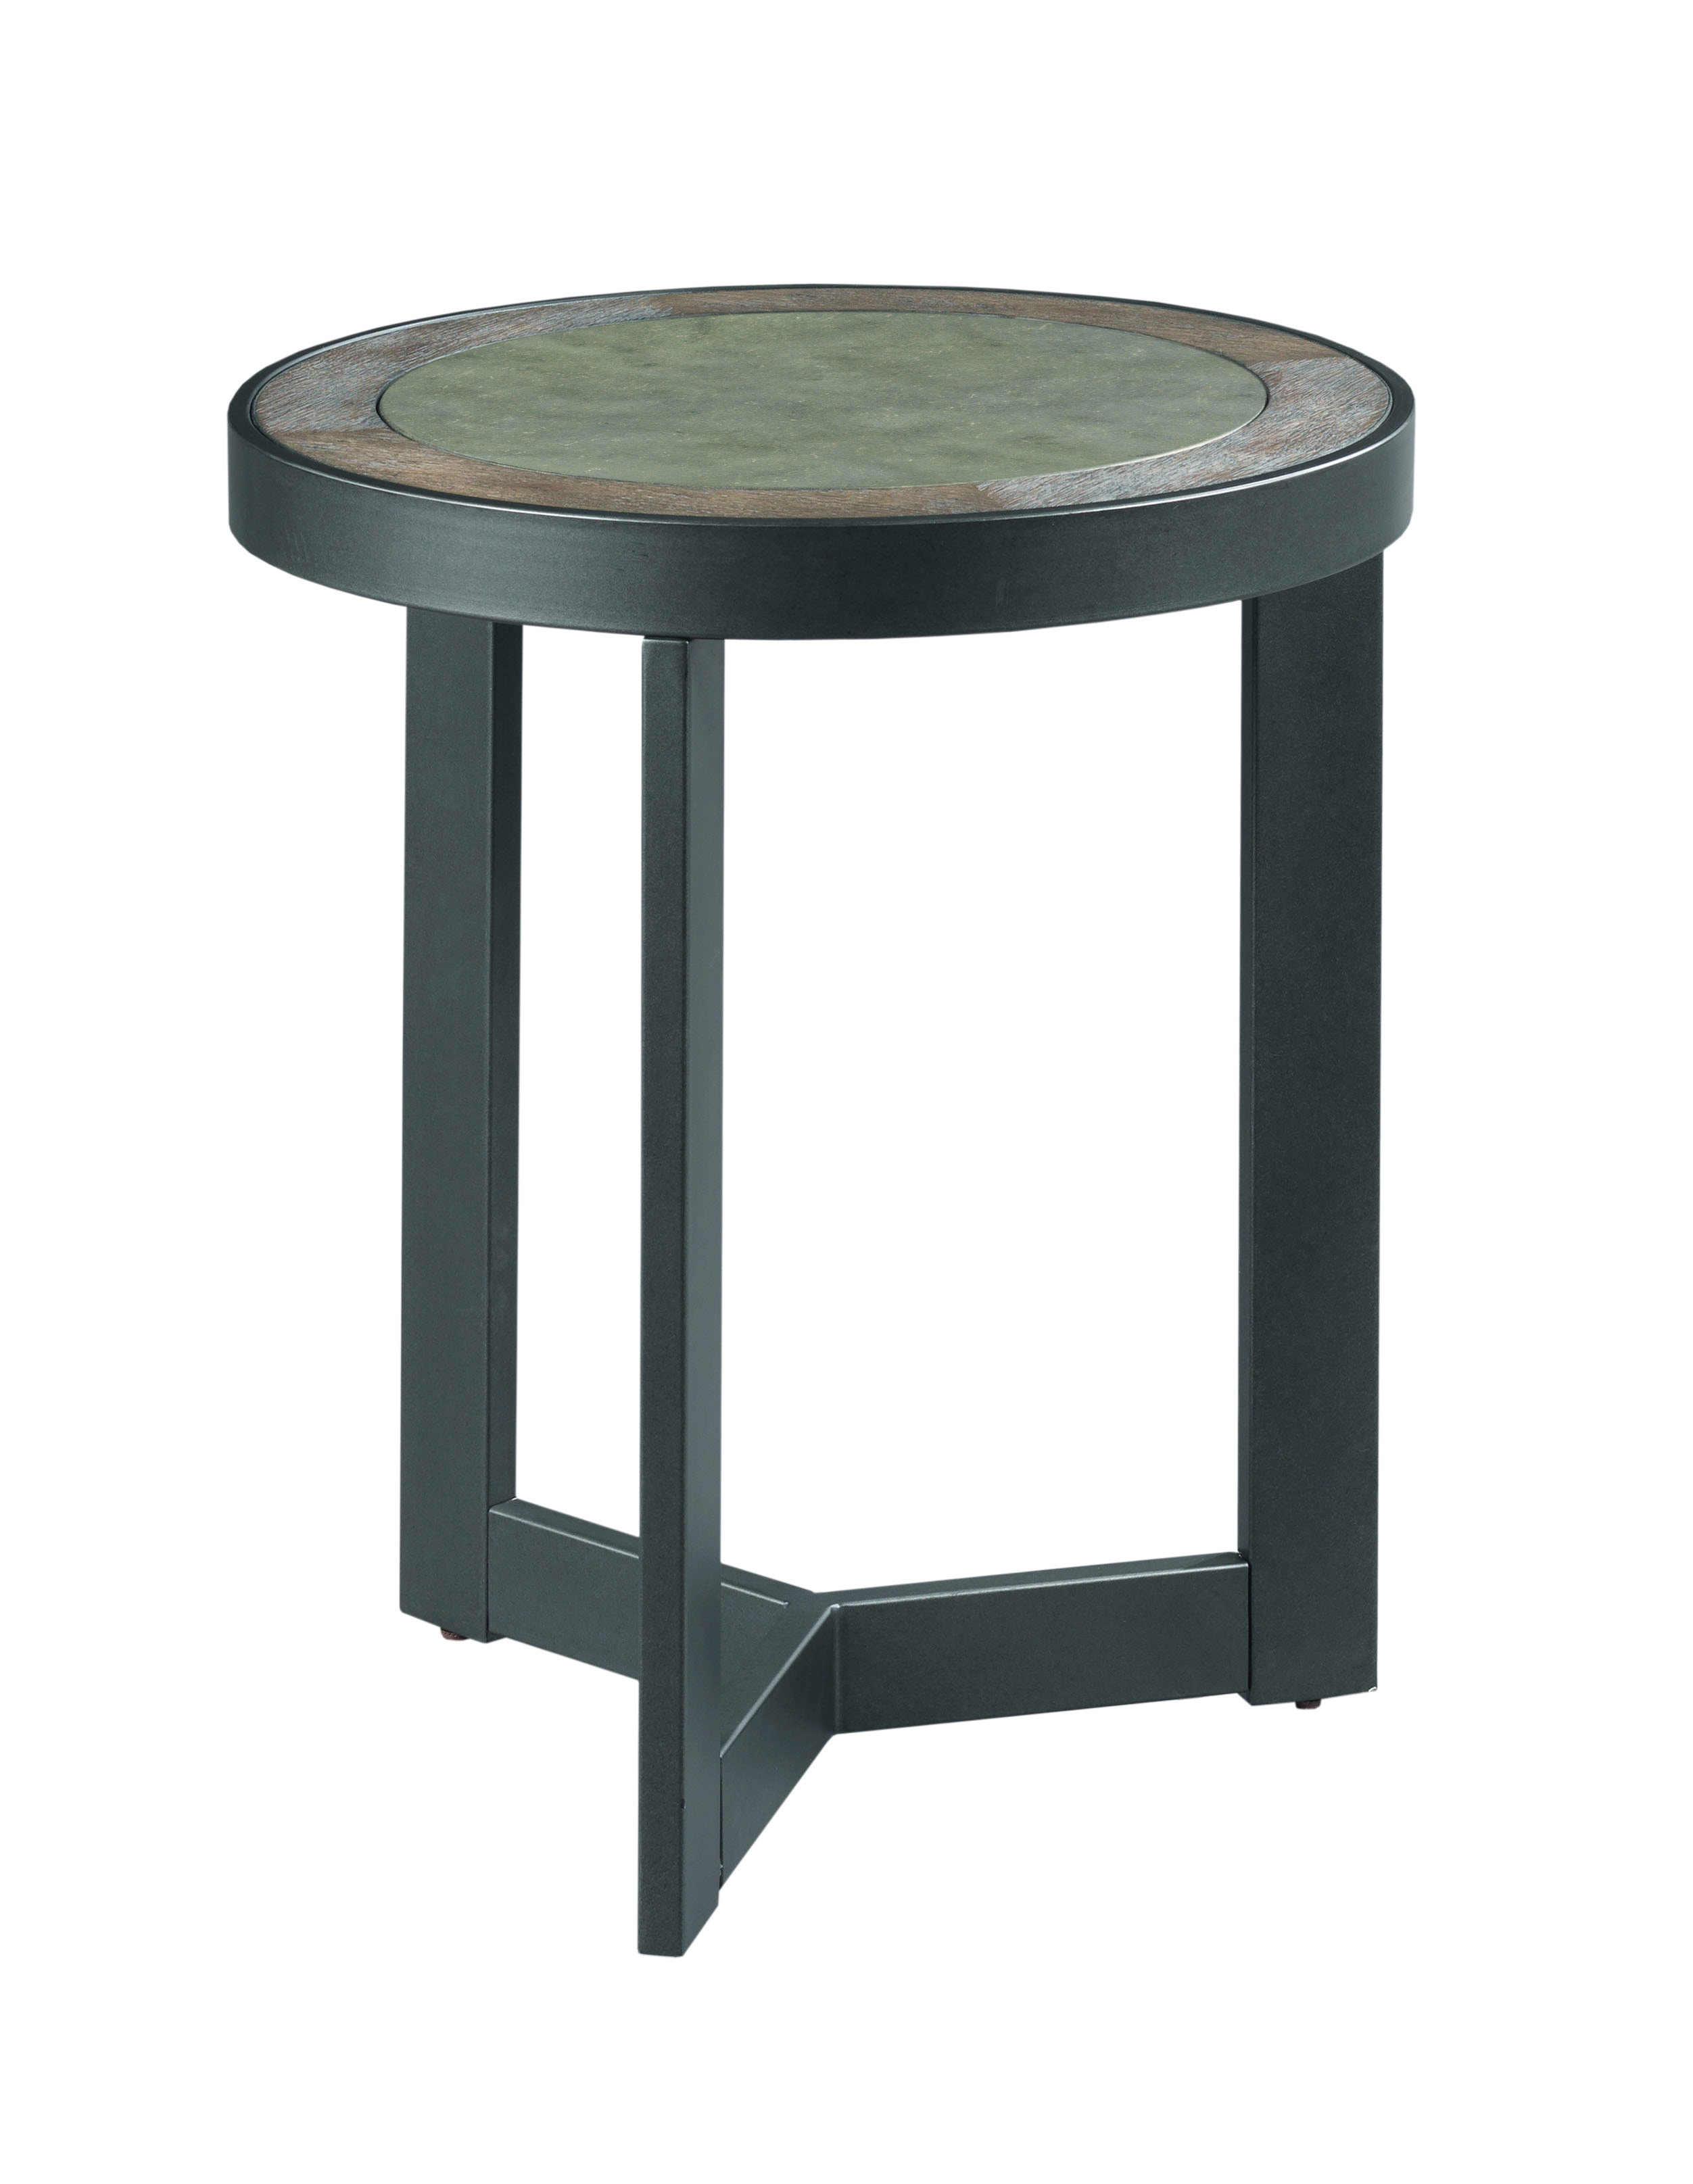 Graystone Round End Table ST:489242